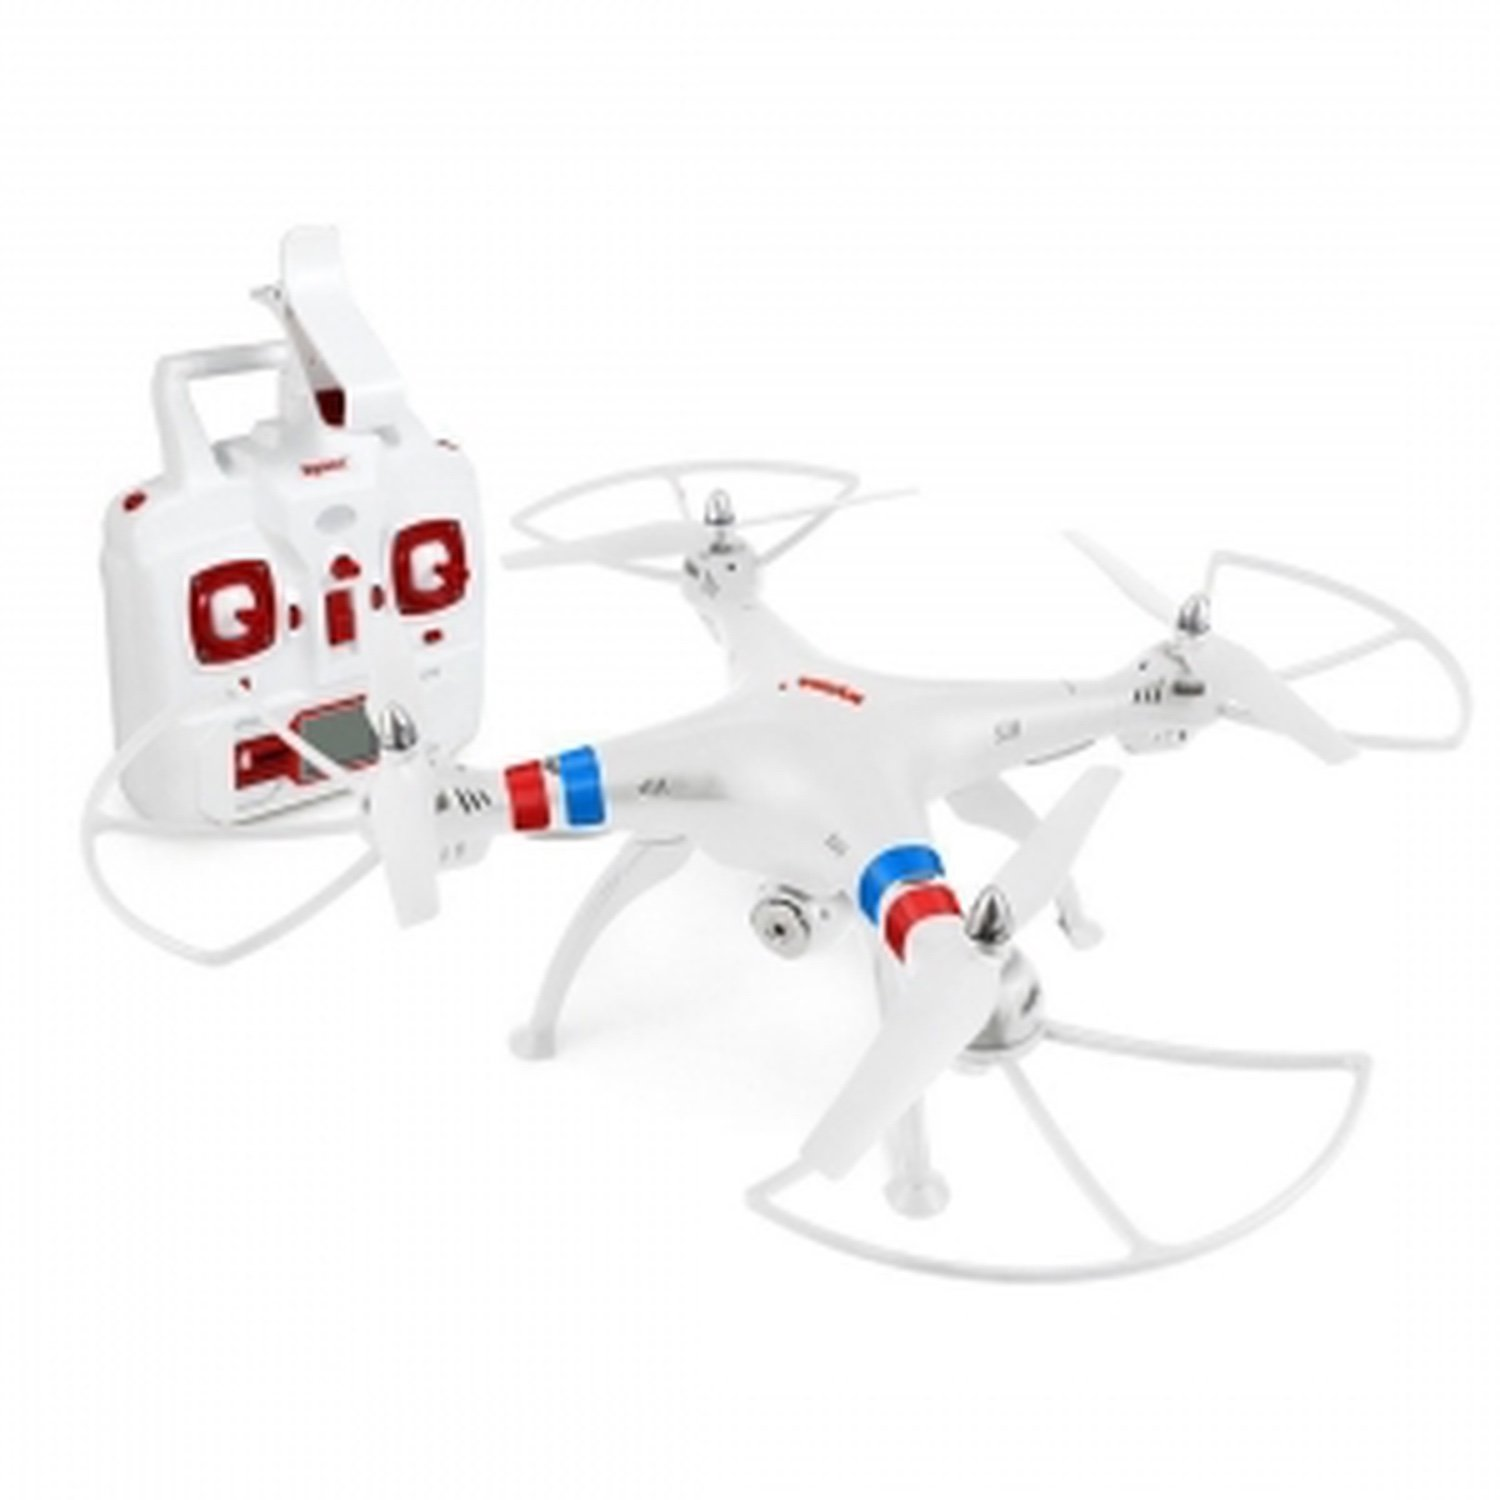 купить QUADCOPTER DRONE SYMA X8W FPV Explorers 2.4GHz 4ch 6 axis Gyro RC CAMERA HD WIFI по цене 102.85 рублей